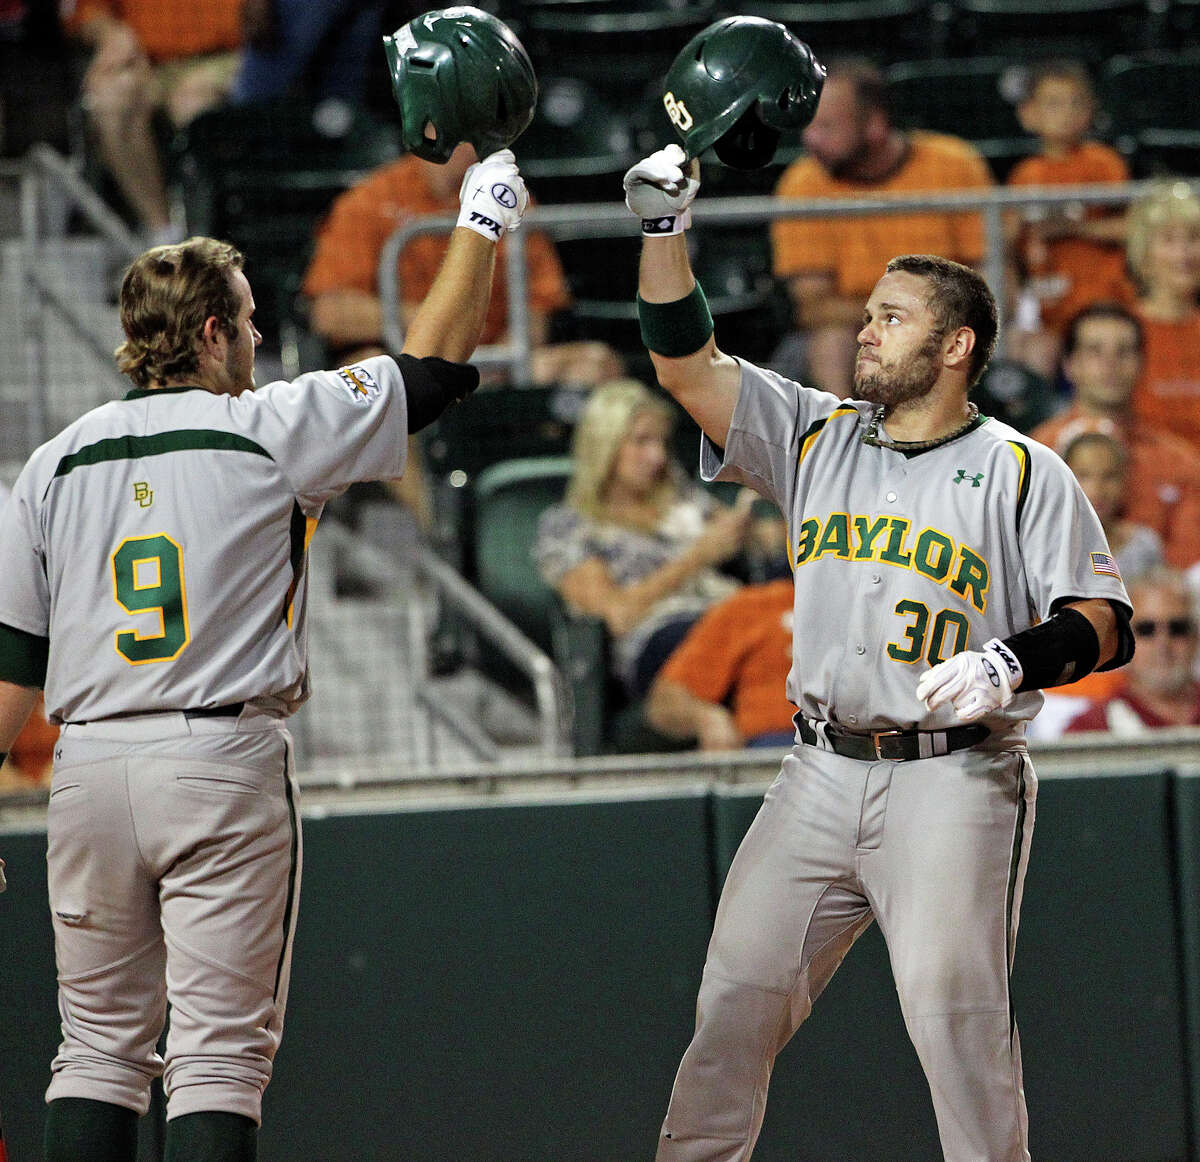 Josh Ludy gets a high hat from Max Muncy (9) after drilling a solo homer to put the Bears up 4-0 as Texas plays Baylor at Disch-Falk Field in Austin on May 18, 2012. Tom Reel/ San Antonio Express-News